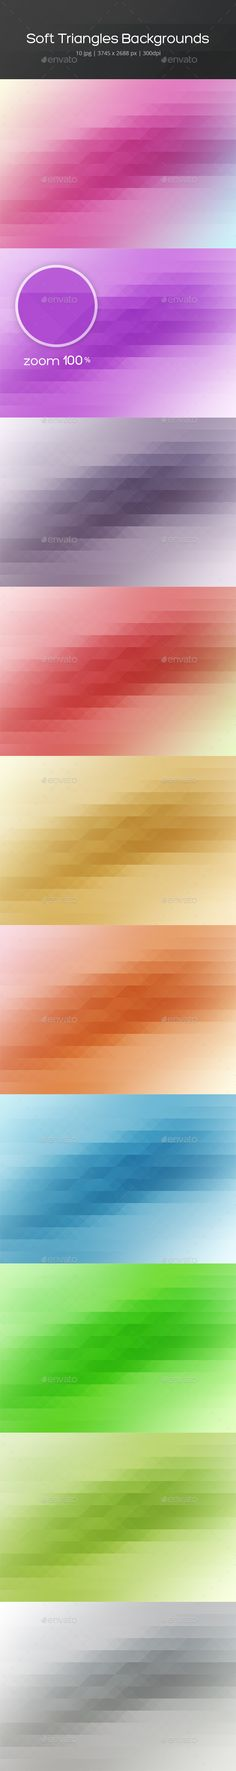 Soft Triangles Backgrounds - Backgrounds Graphics - 3745×2688px (300 dpi)